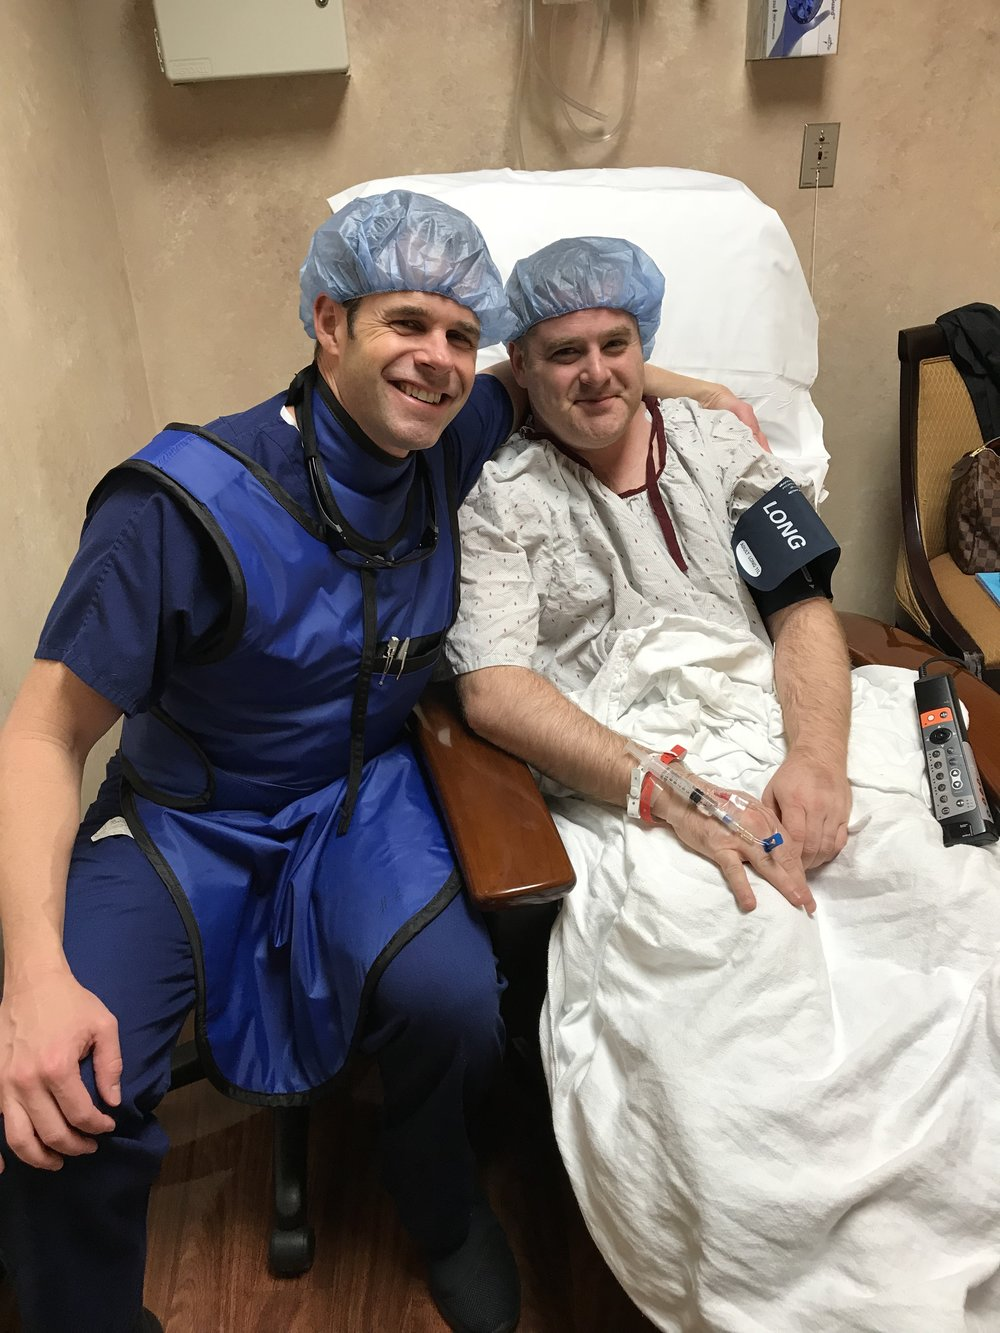 Dr. Nash (left) with David Duke (right) just before his procedure.